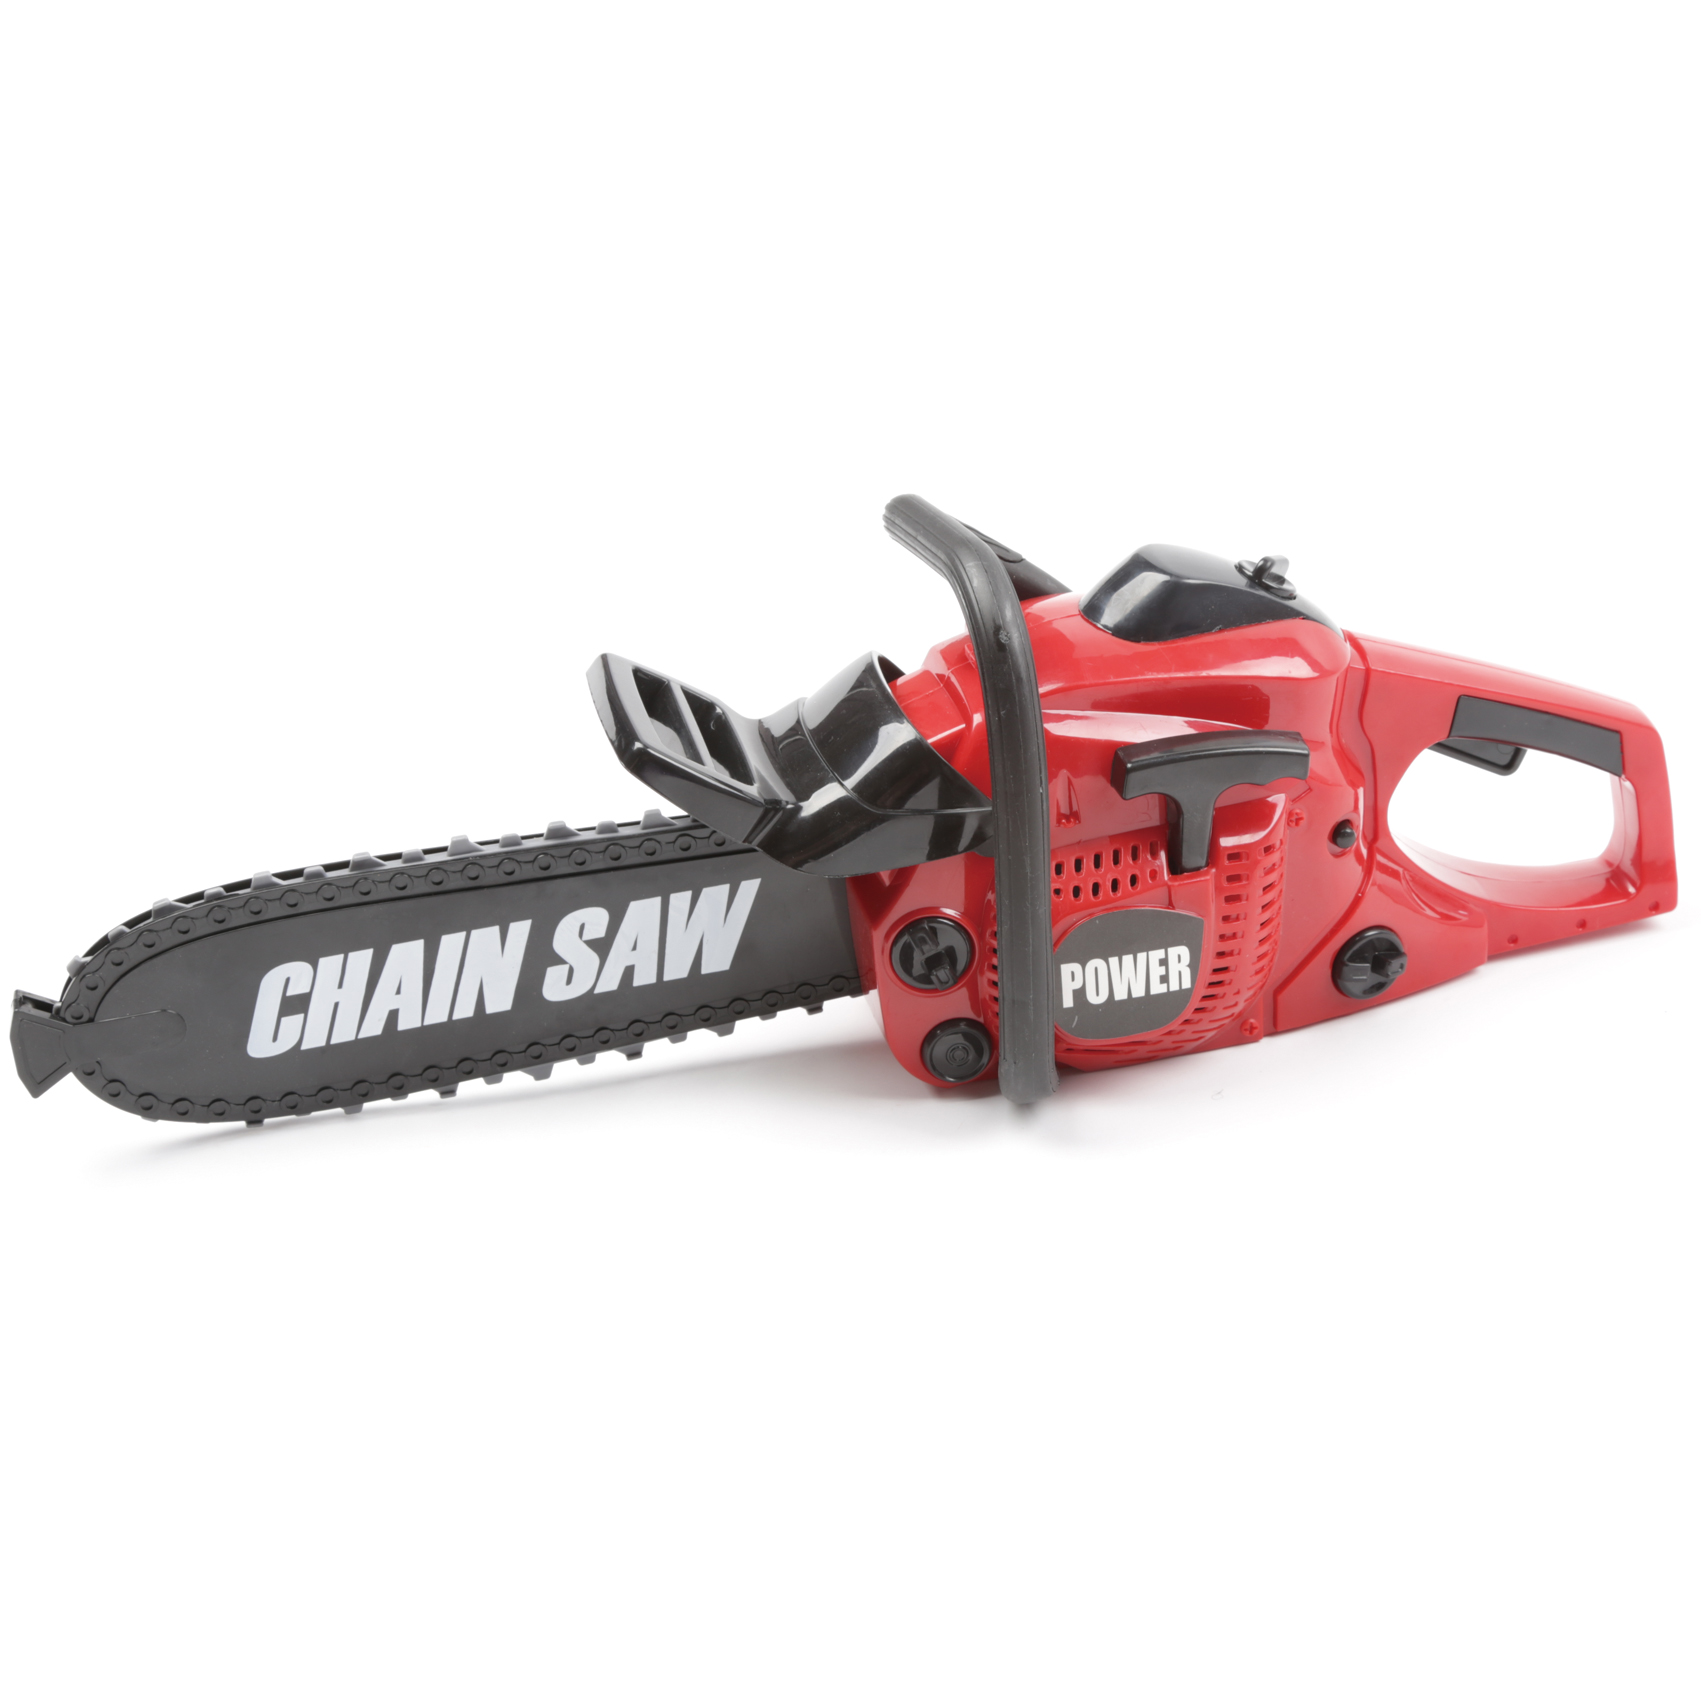 Kids Pretend Play <font><b>Tool</b></font> <font><b>Toys</b></font> Rotating Chainsaw with Sound Simulation Repair <font><b>Tools</b></font> Engineering Educational <font><b>Toys</b></font> Gifts For Boys image